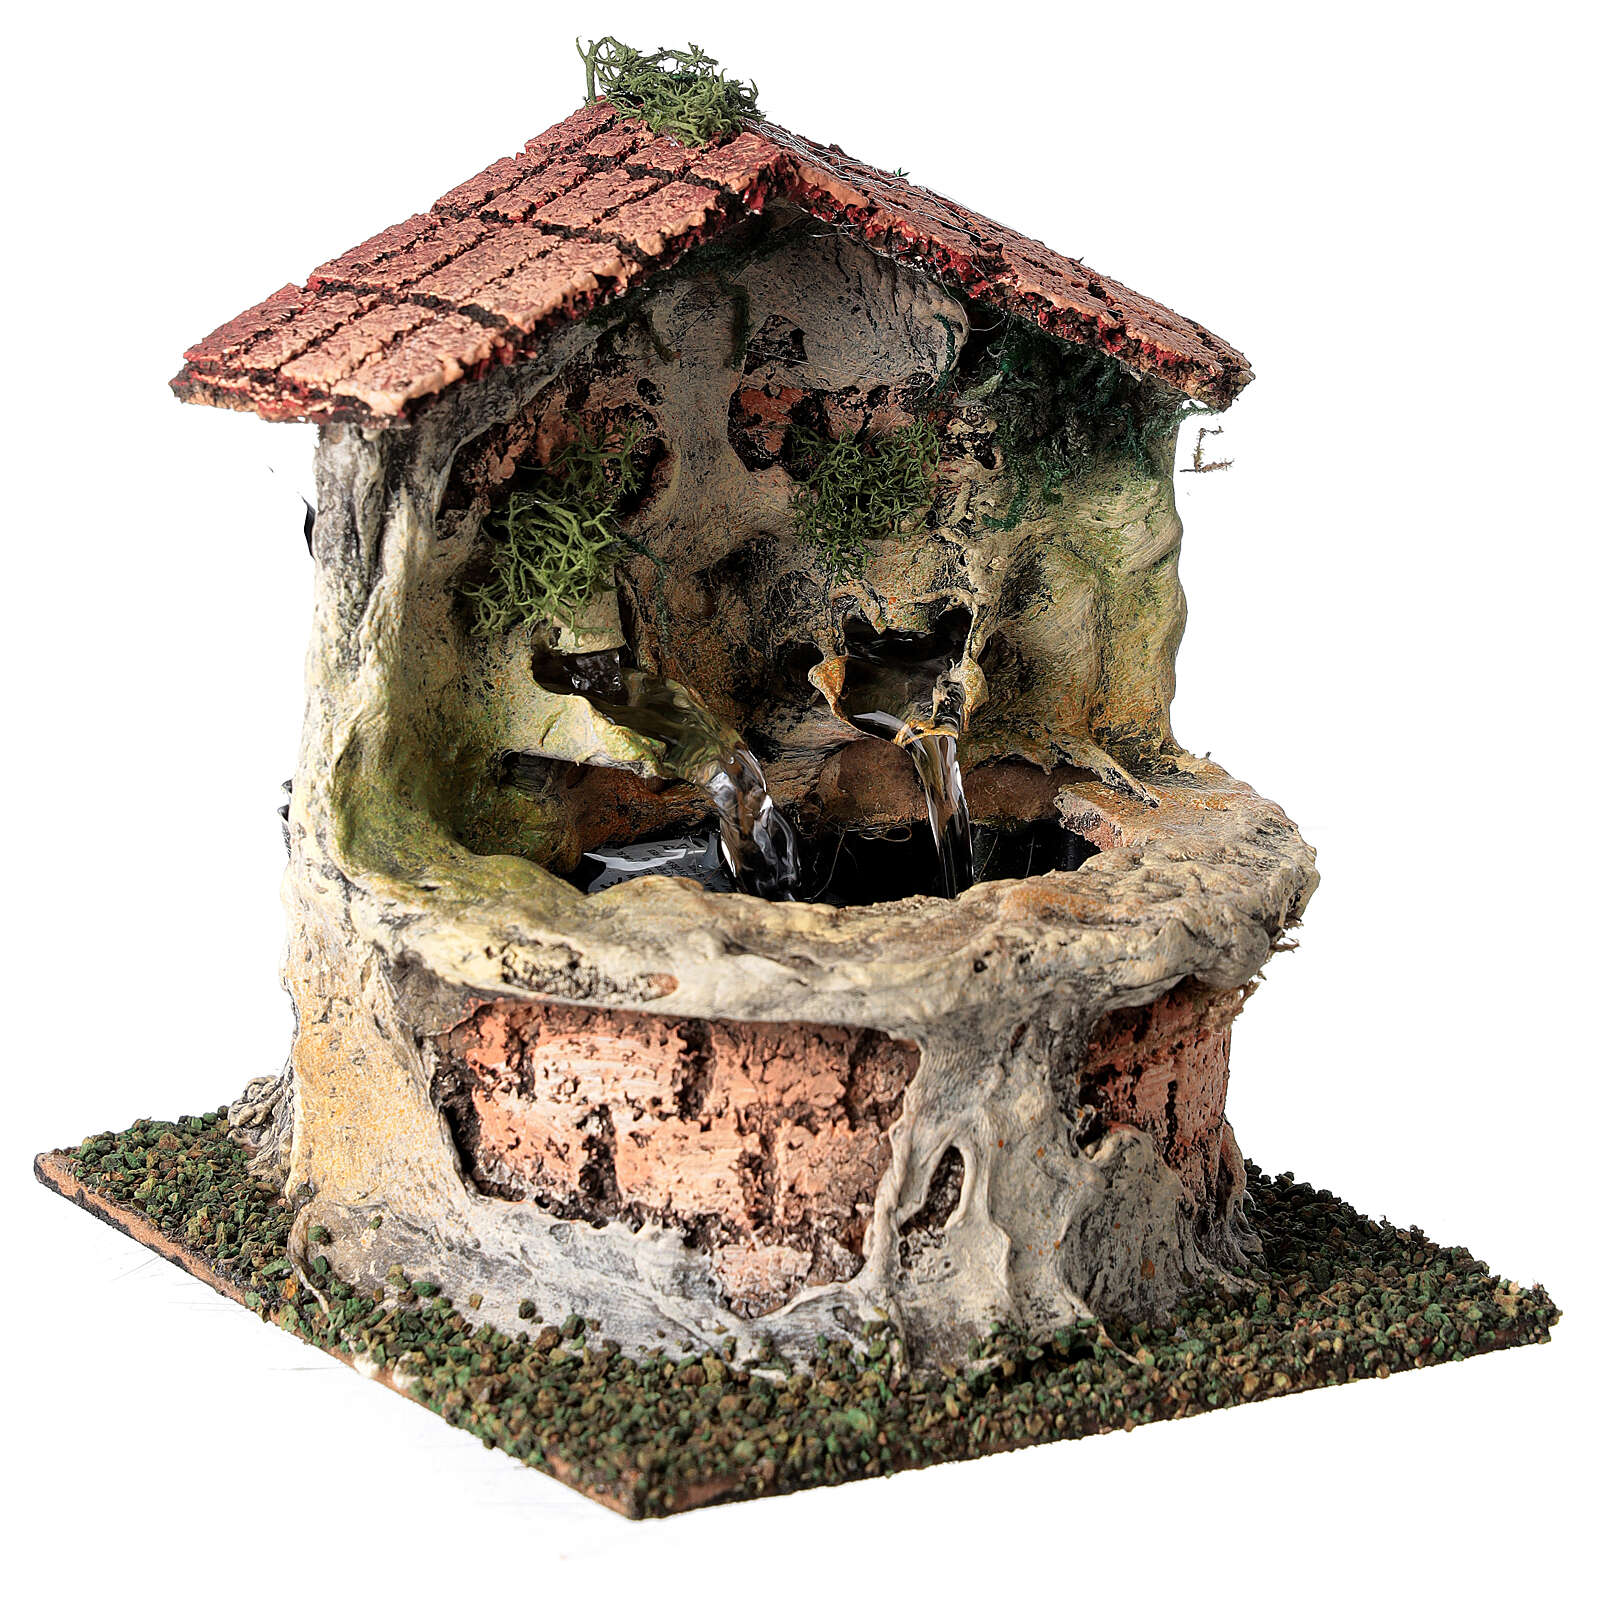 Working fountain with double dispenser for Nativity scene 10-12 cm 15x10x15 cm 4